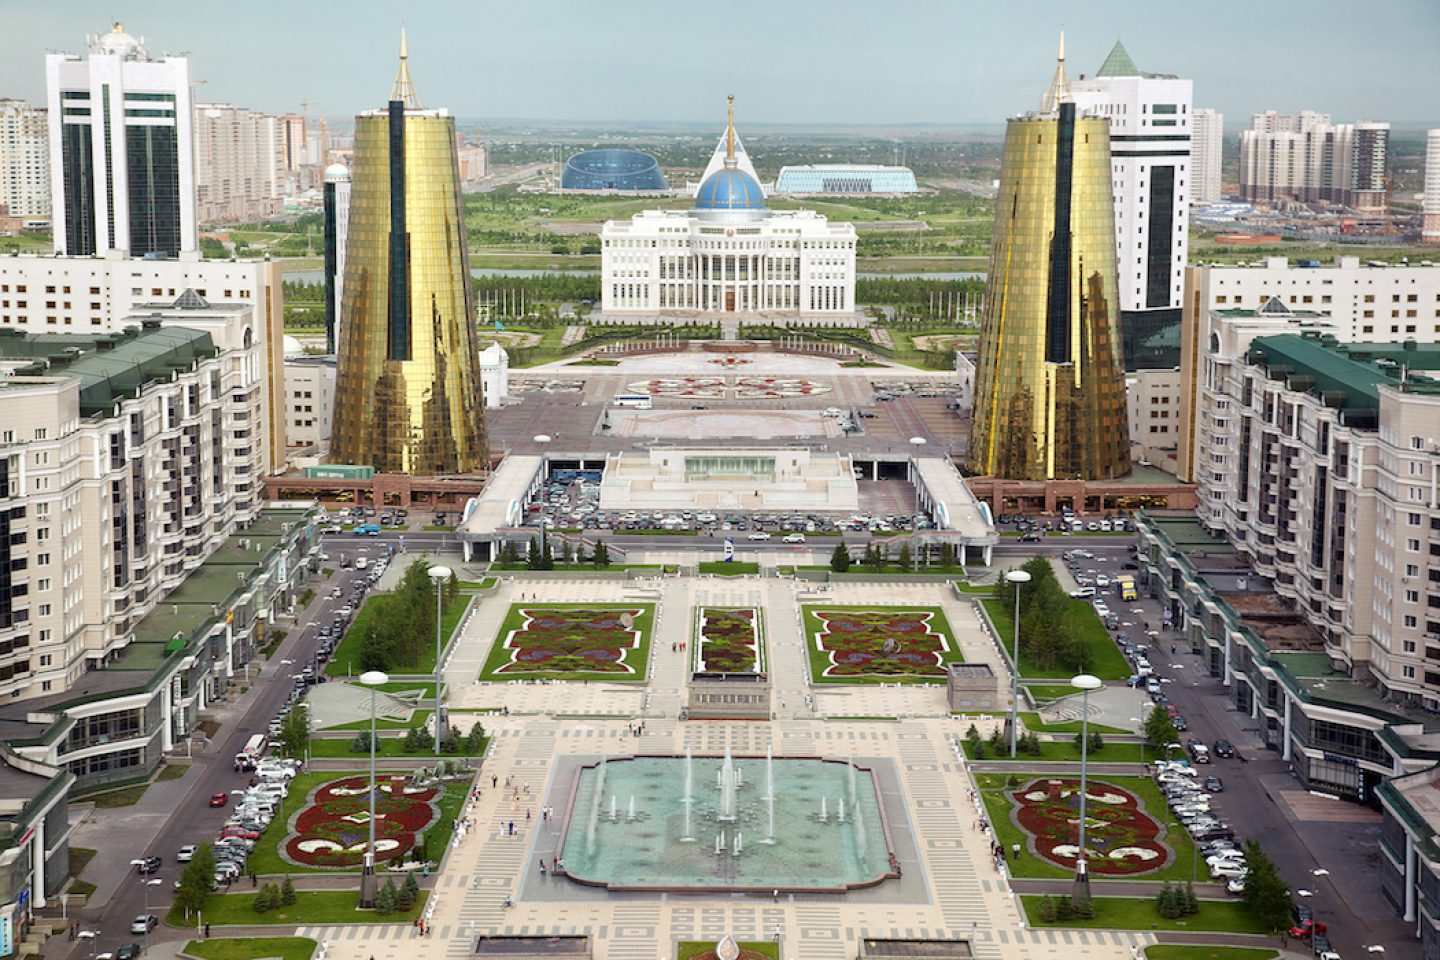 Astana's neo-baroque Avenue of the Republic: The grand center of the new town